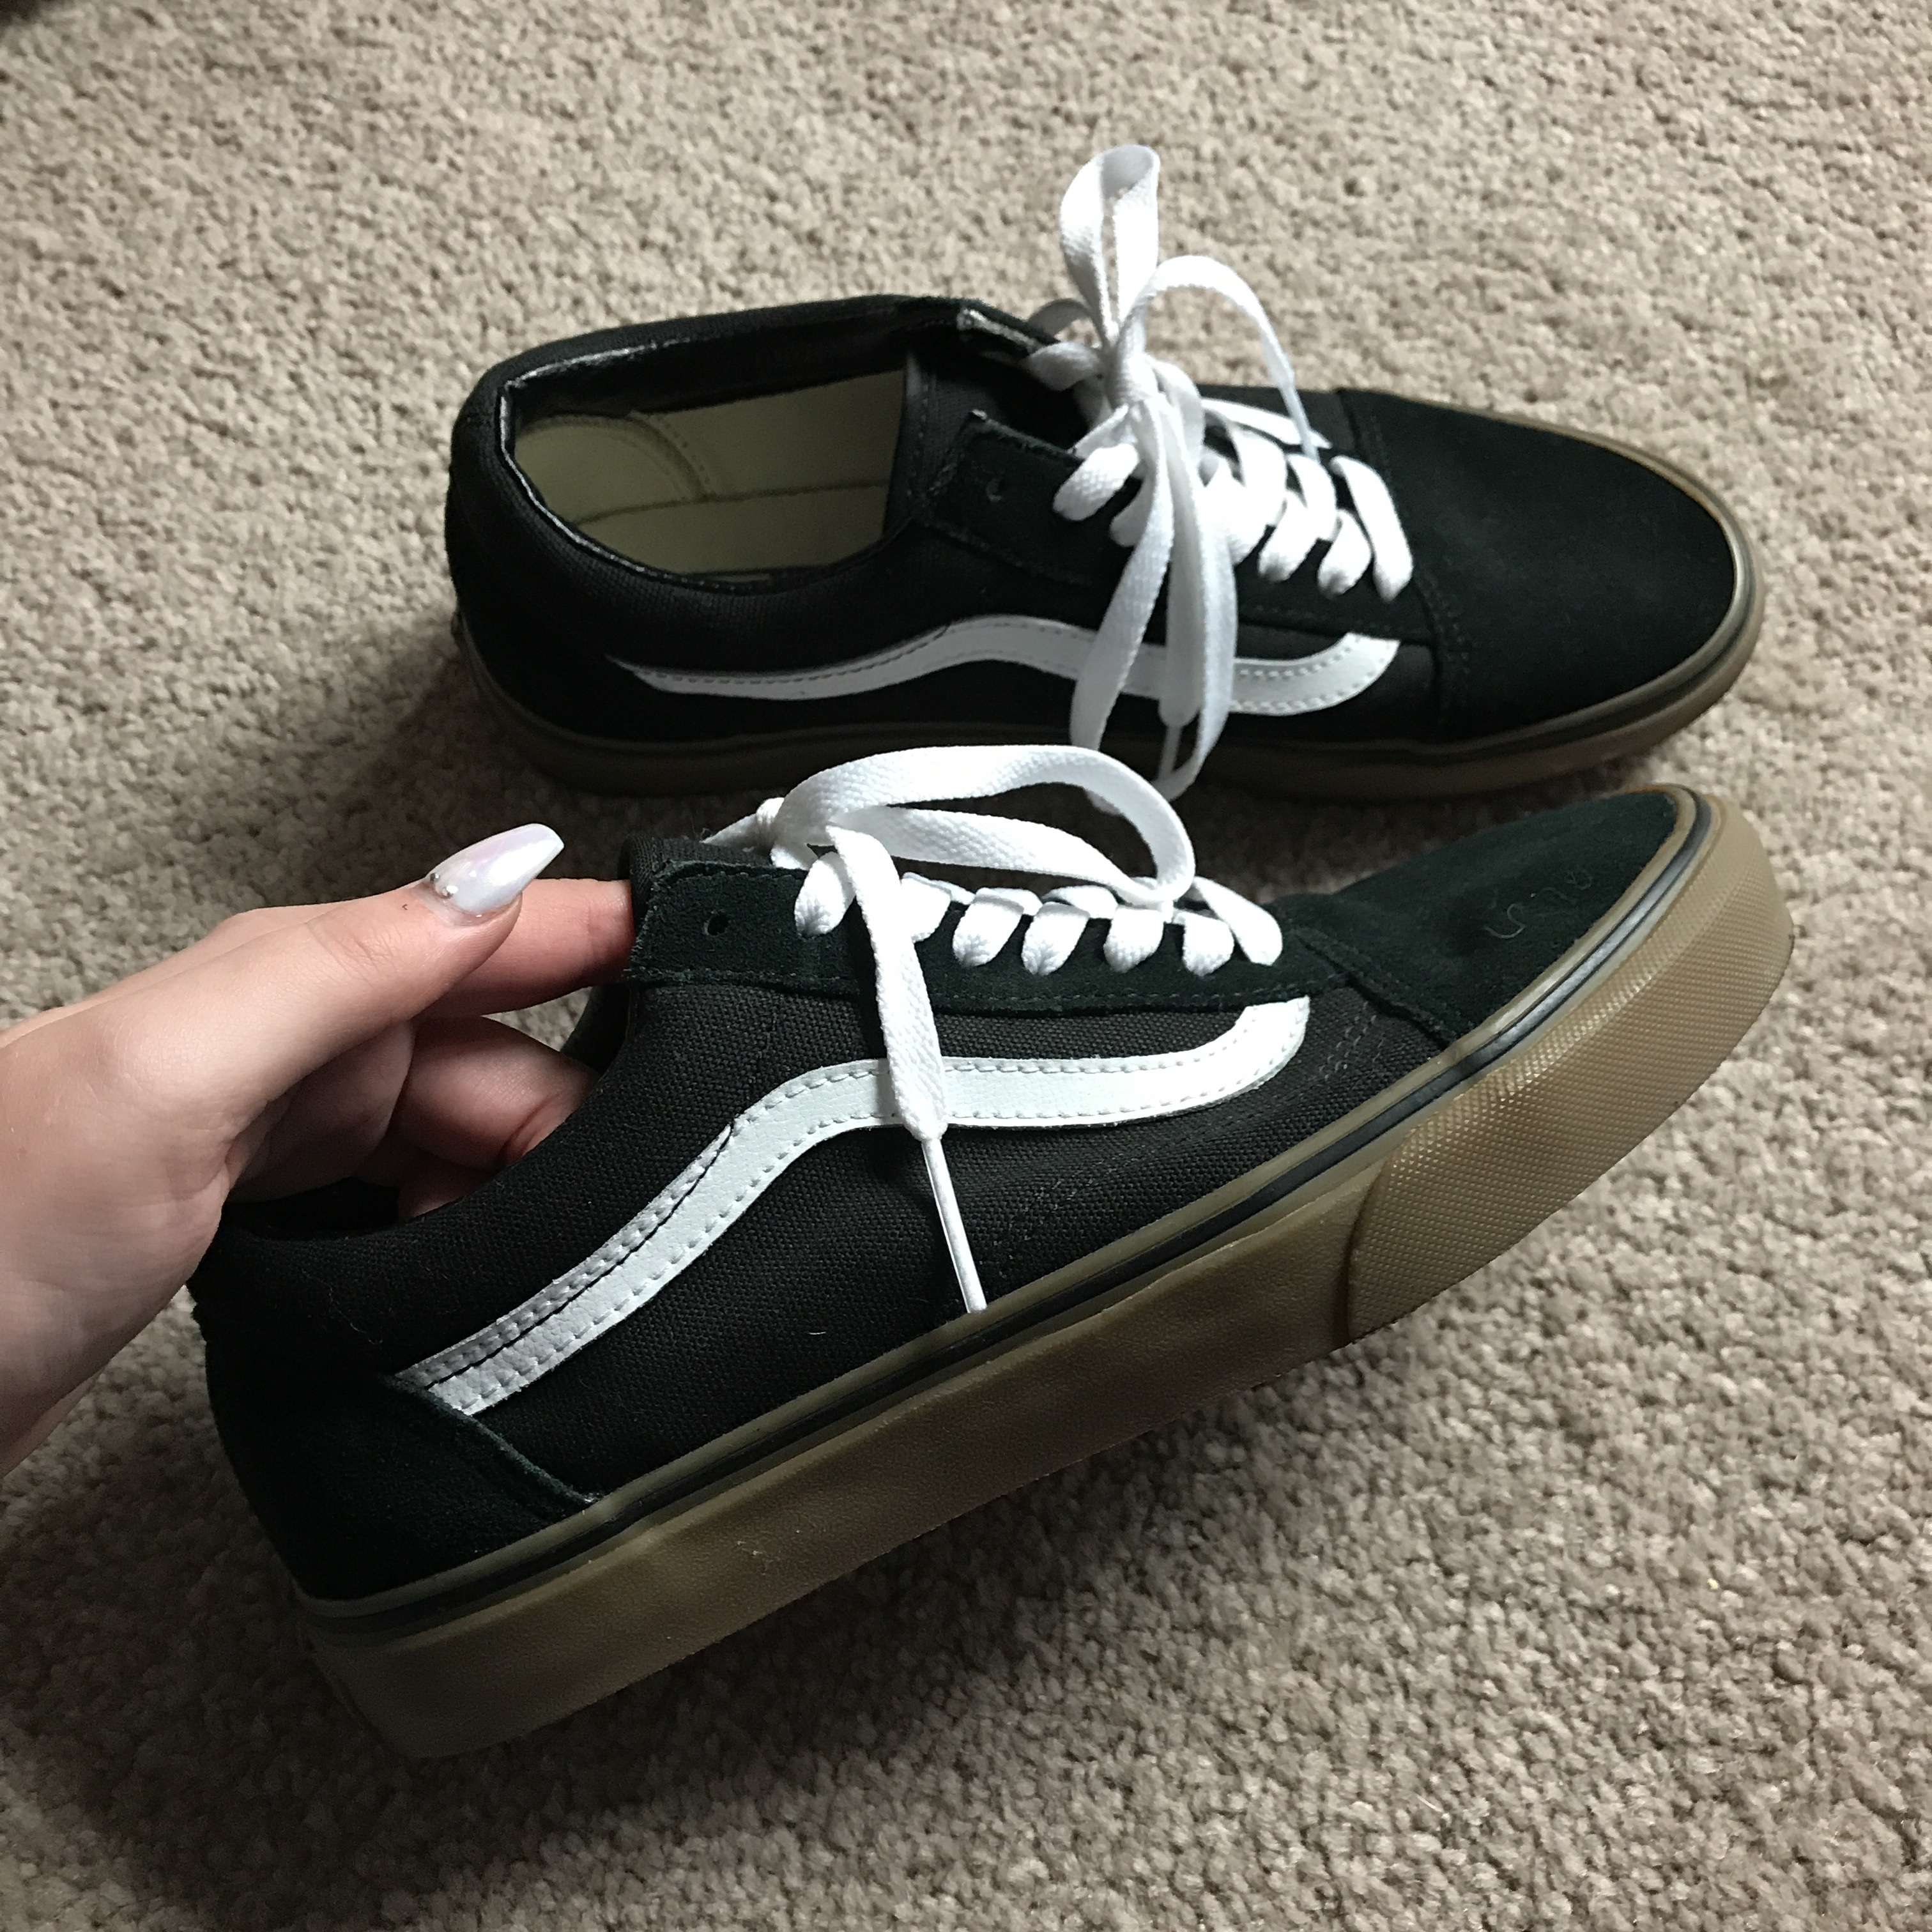 BRAND NEW Vans Old Skool Black with Gum sole. Size